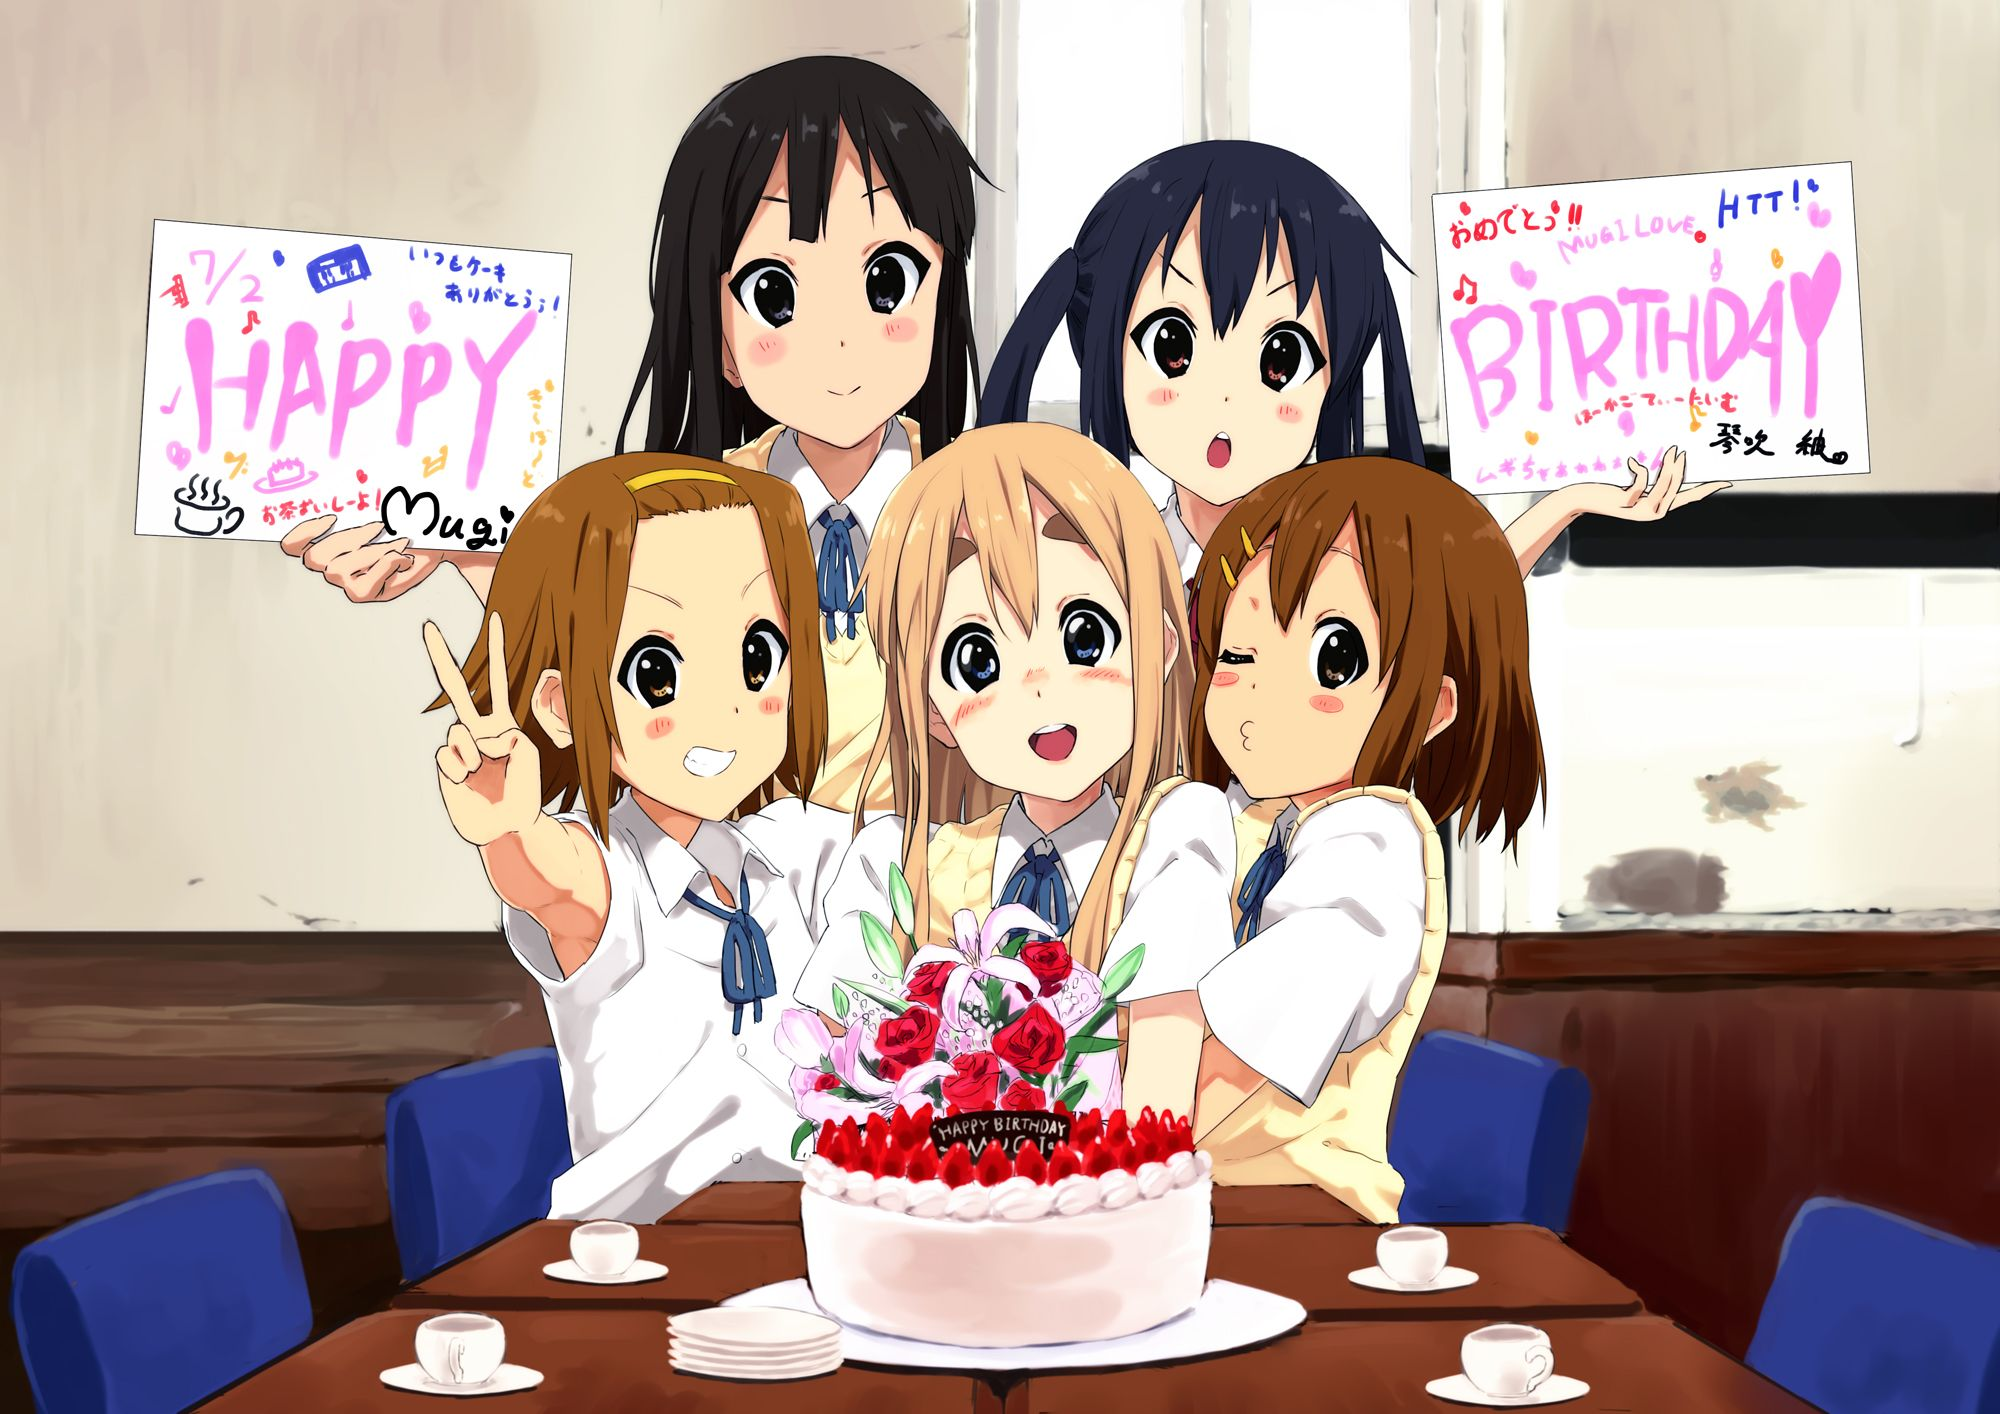 Anime Happy Birthday 5 Anime K on! Pinterest Happy